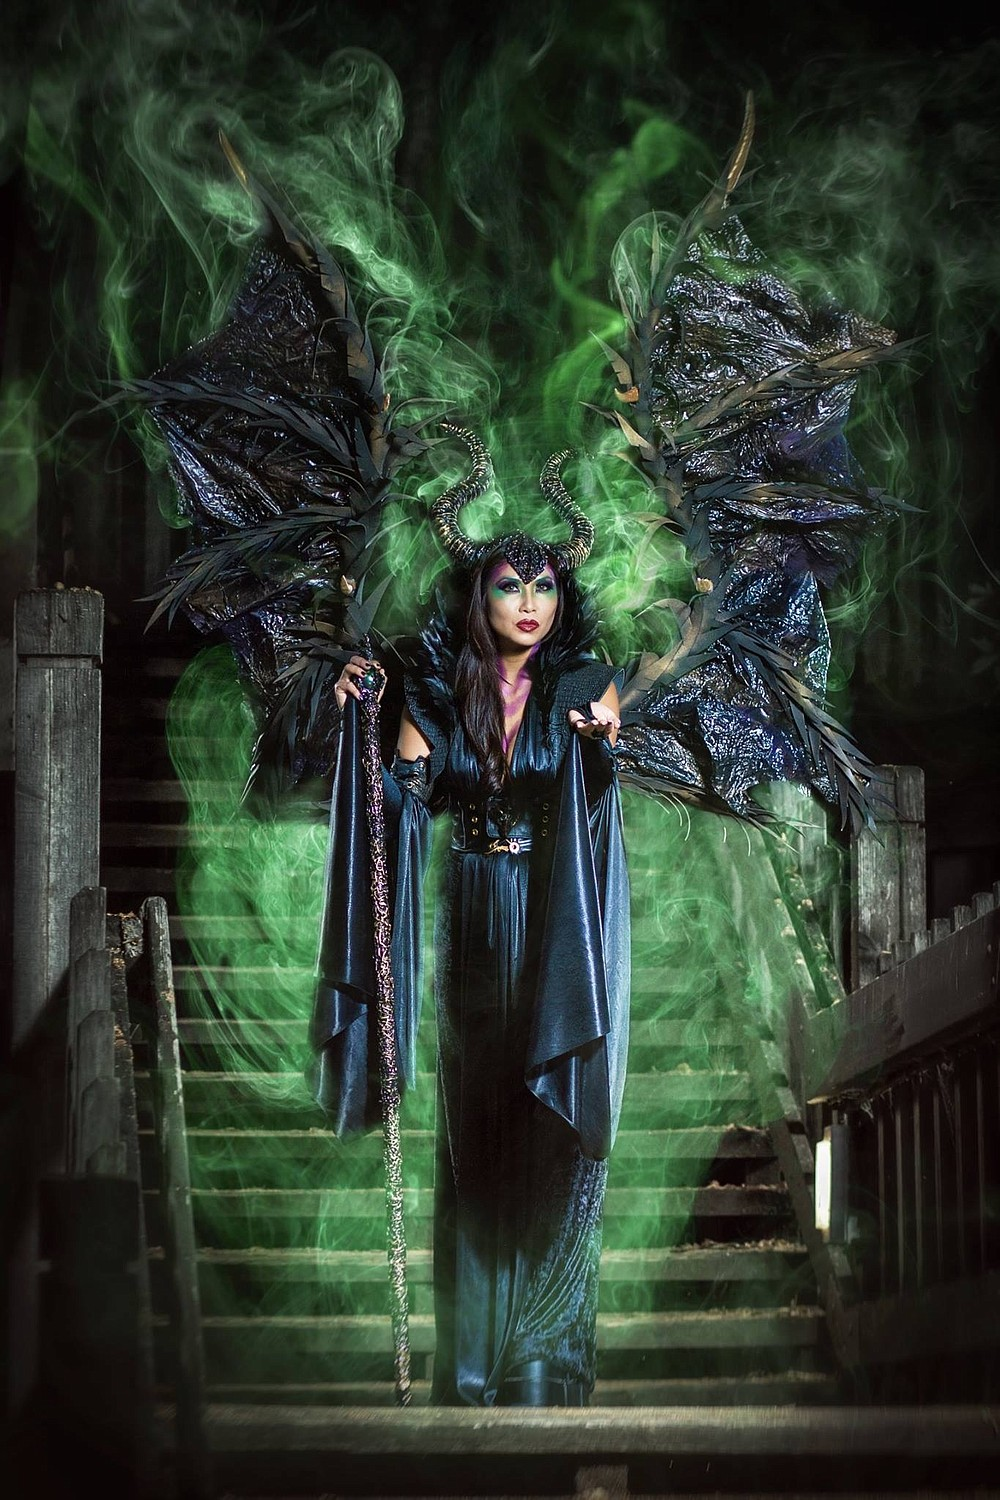 Nguyen  as the title character from Maleficent (2014)